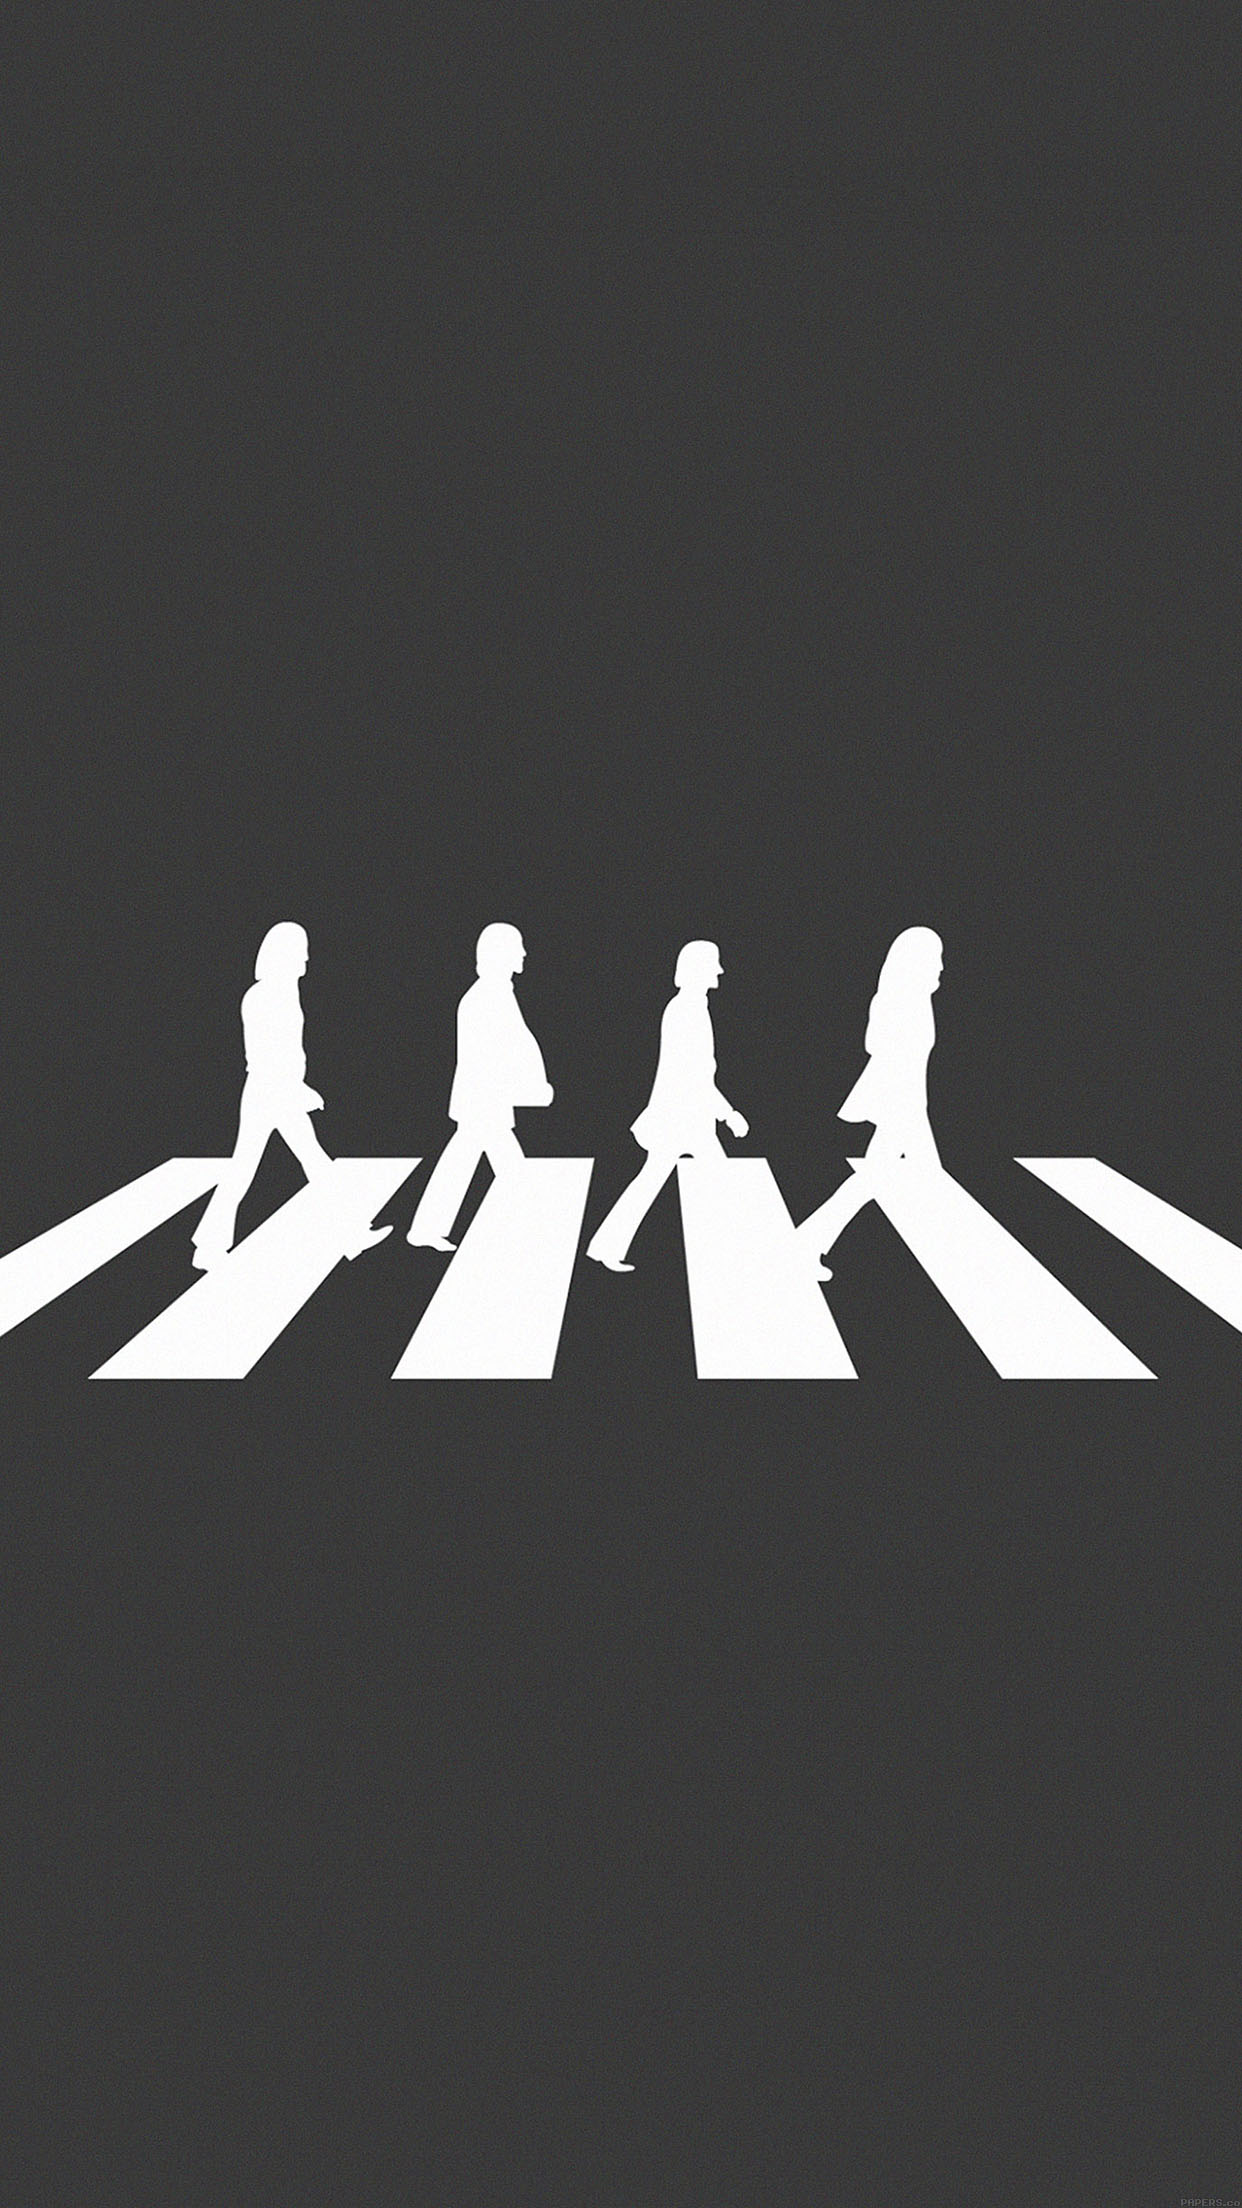 Beatles Abbey Road Music Art Android wallpaper   Android HD wallpapers 1242x2208